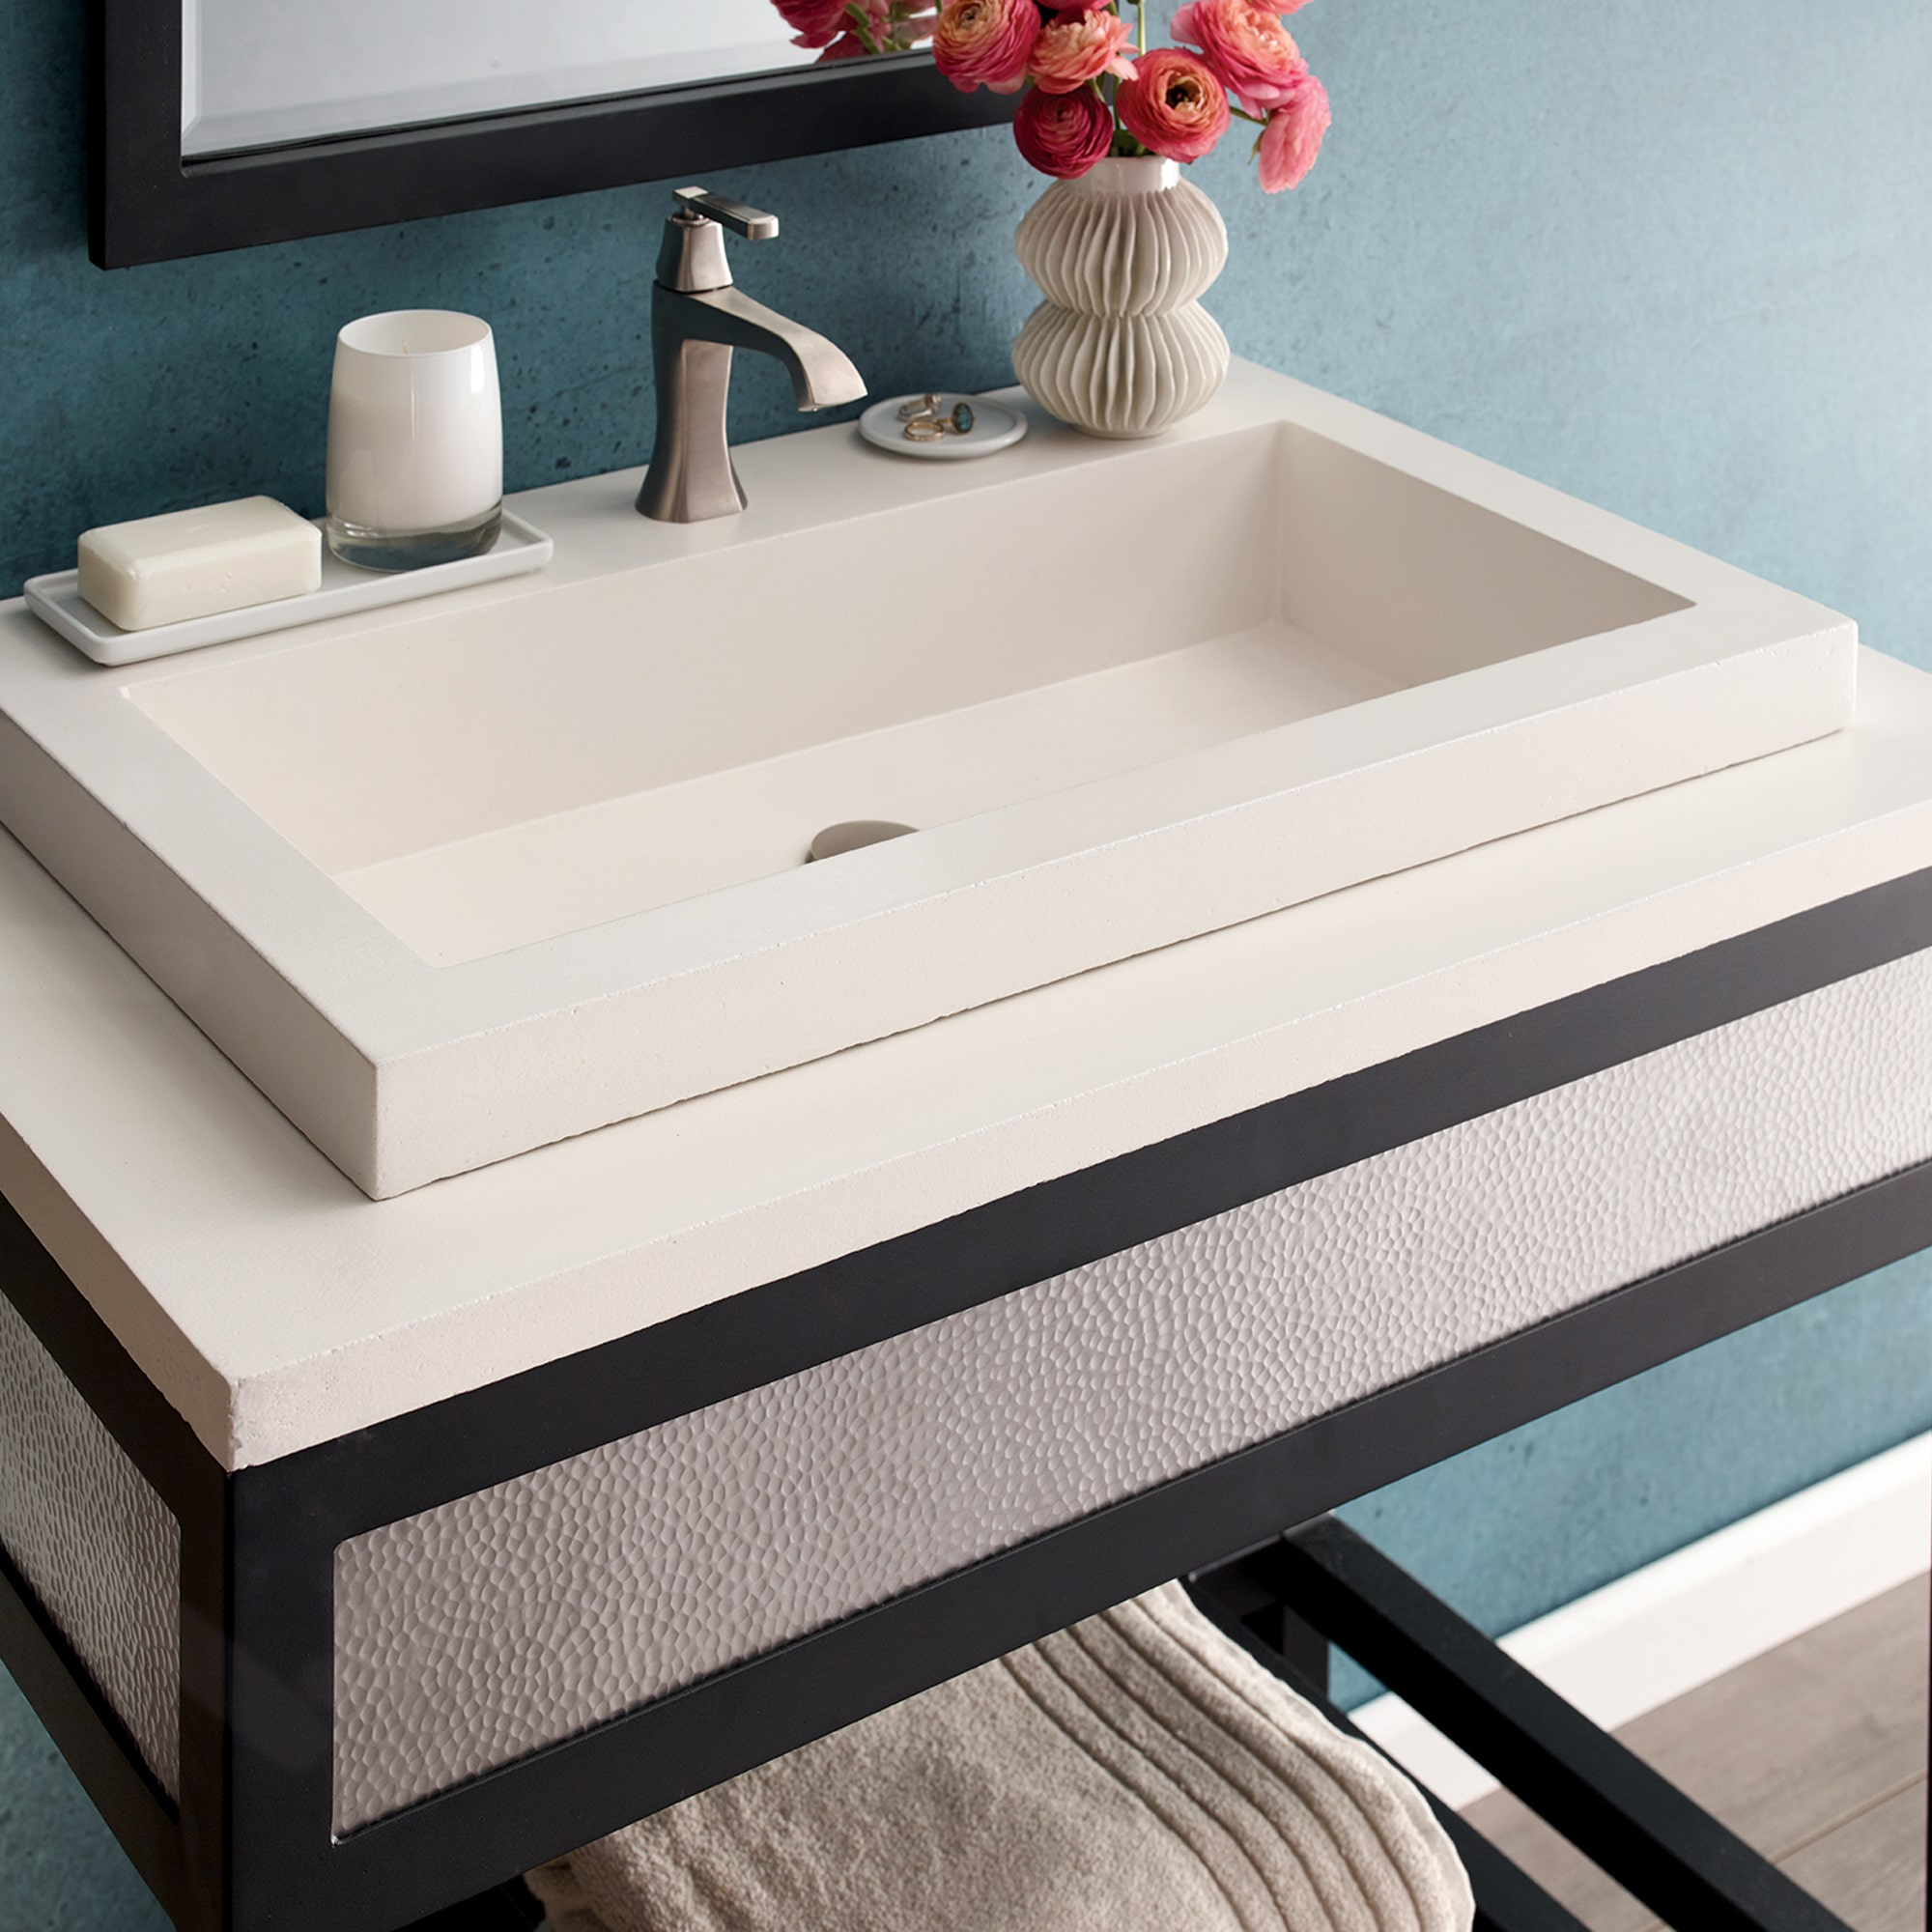 Trough-3019-NativeStone-Bath-Pearl-NSL3019-P-2000